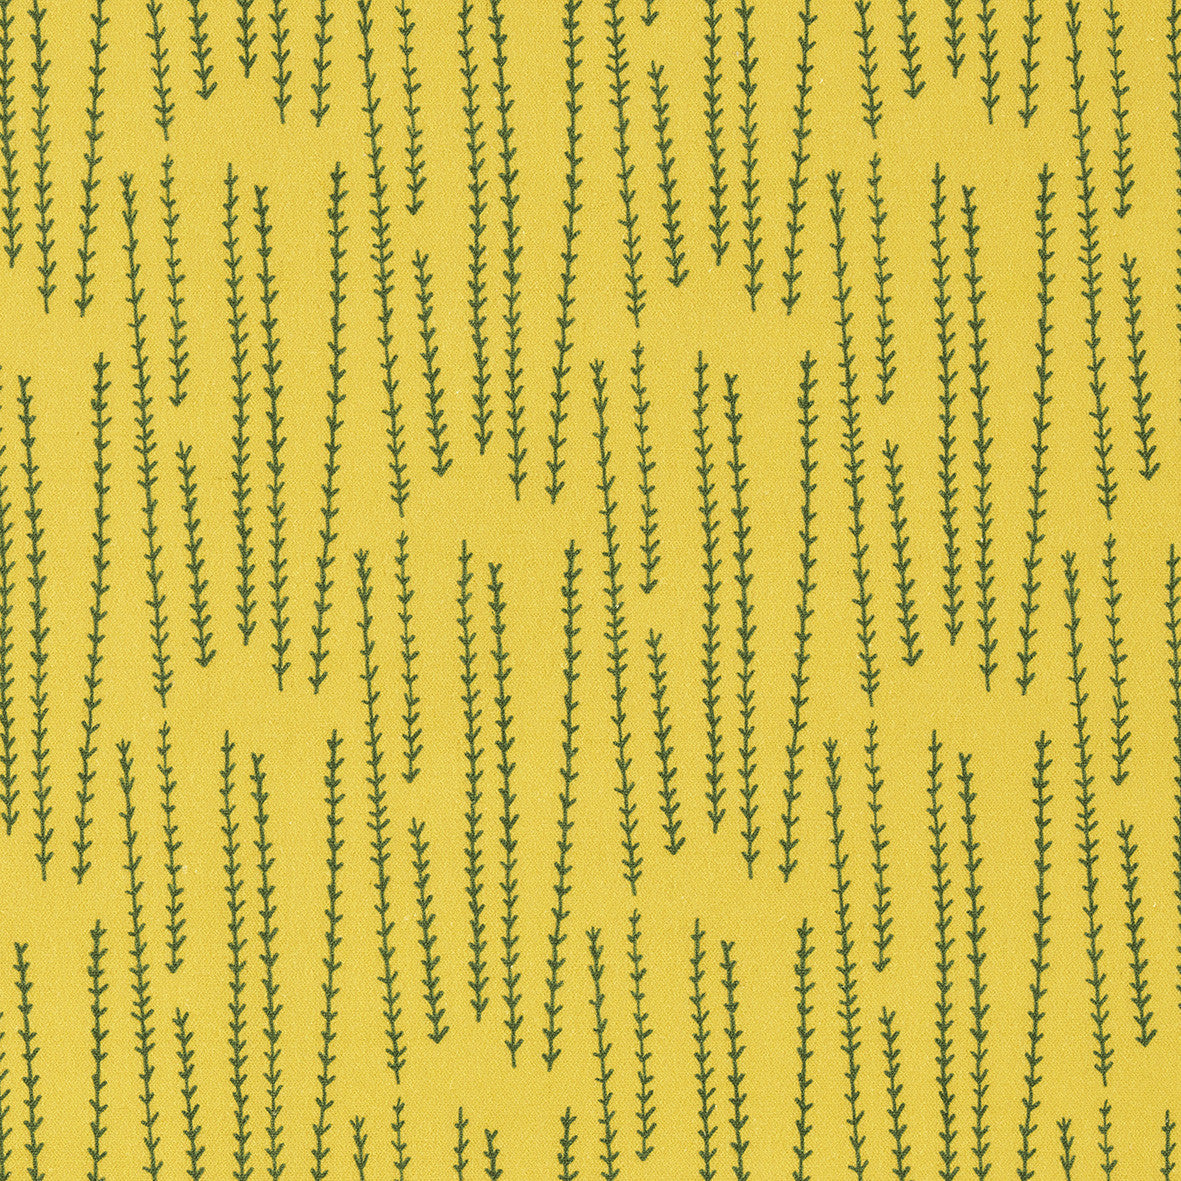 Graphic Rosemary Sprig Pattern Printed Linen Cotton Canvas Home Decor Fabric by meter or yard for curtains, blinds or upholstery in Bright Mustard Yellow  & Dark Olive Green ships from Canada (USA)